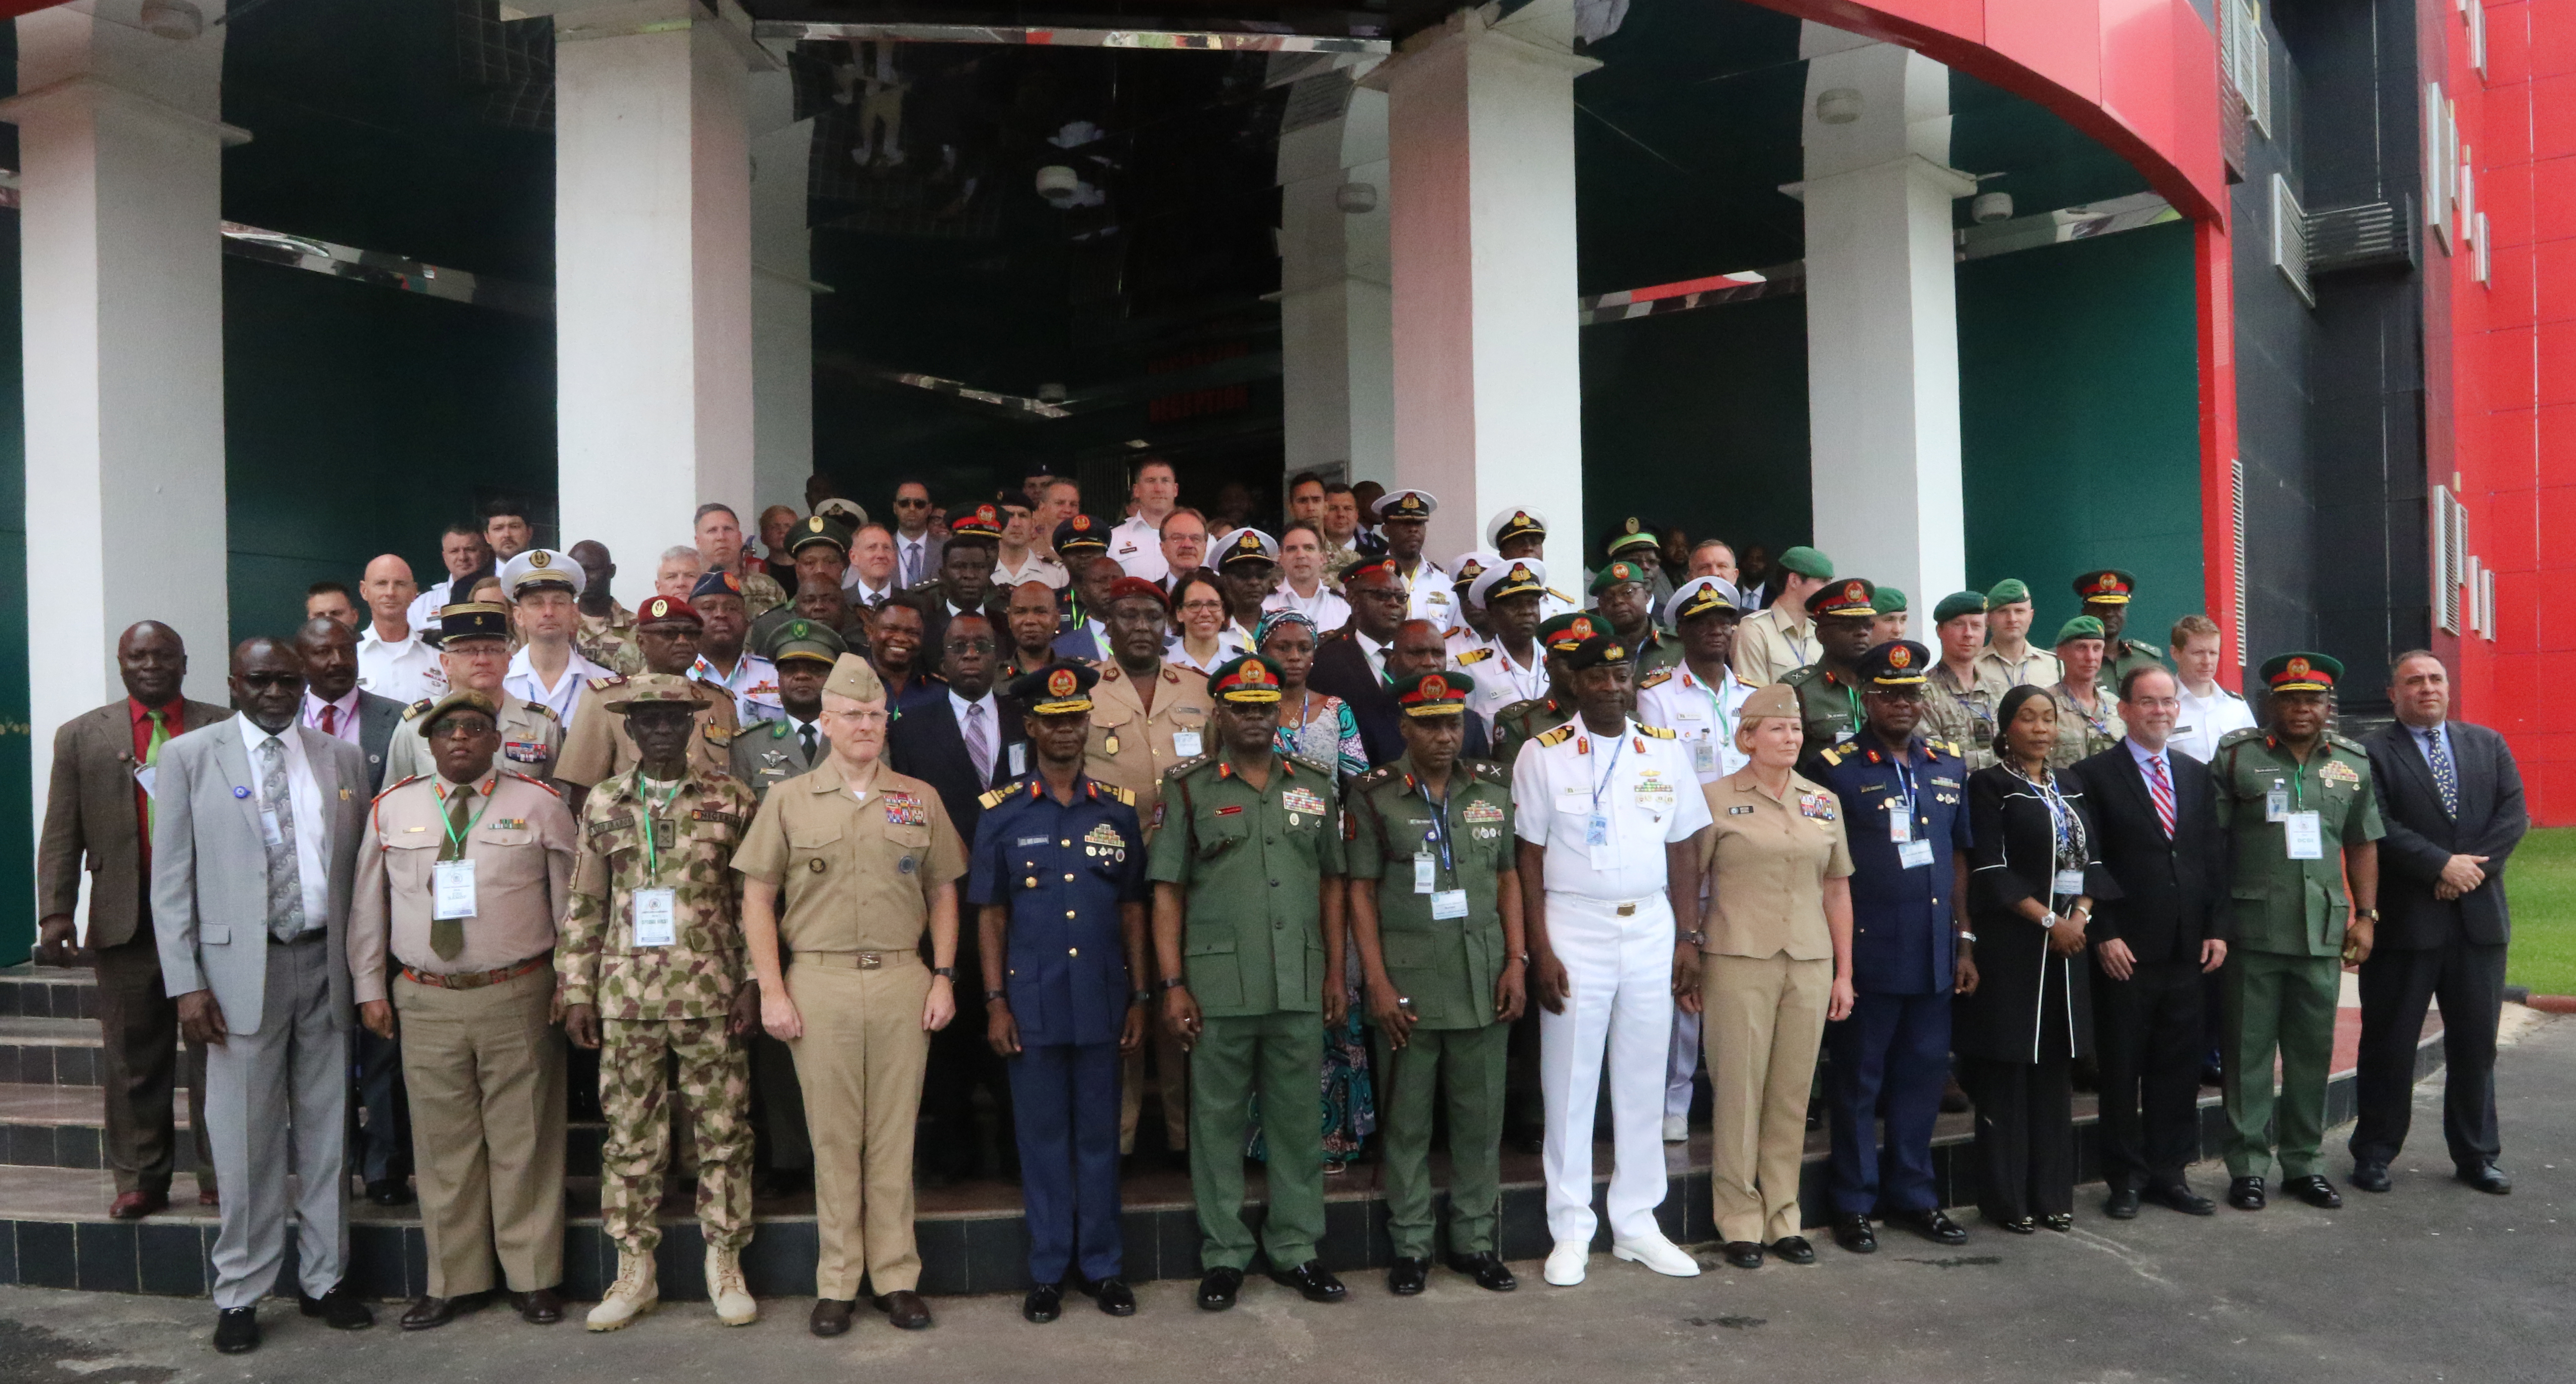 ABUJA, Nigeria – Attendees pose for a group photo during the Lake Chad Basin Directors of Military Intelligence Conference June 19, 2018 in Abuja, Nigeria.